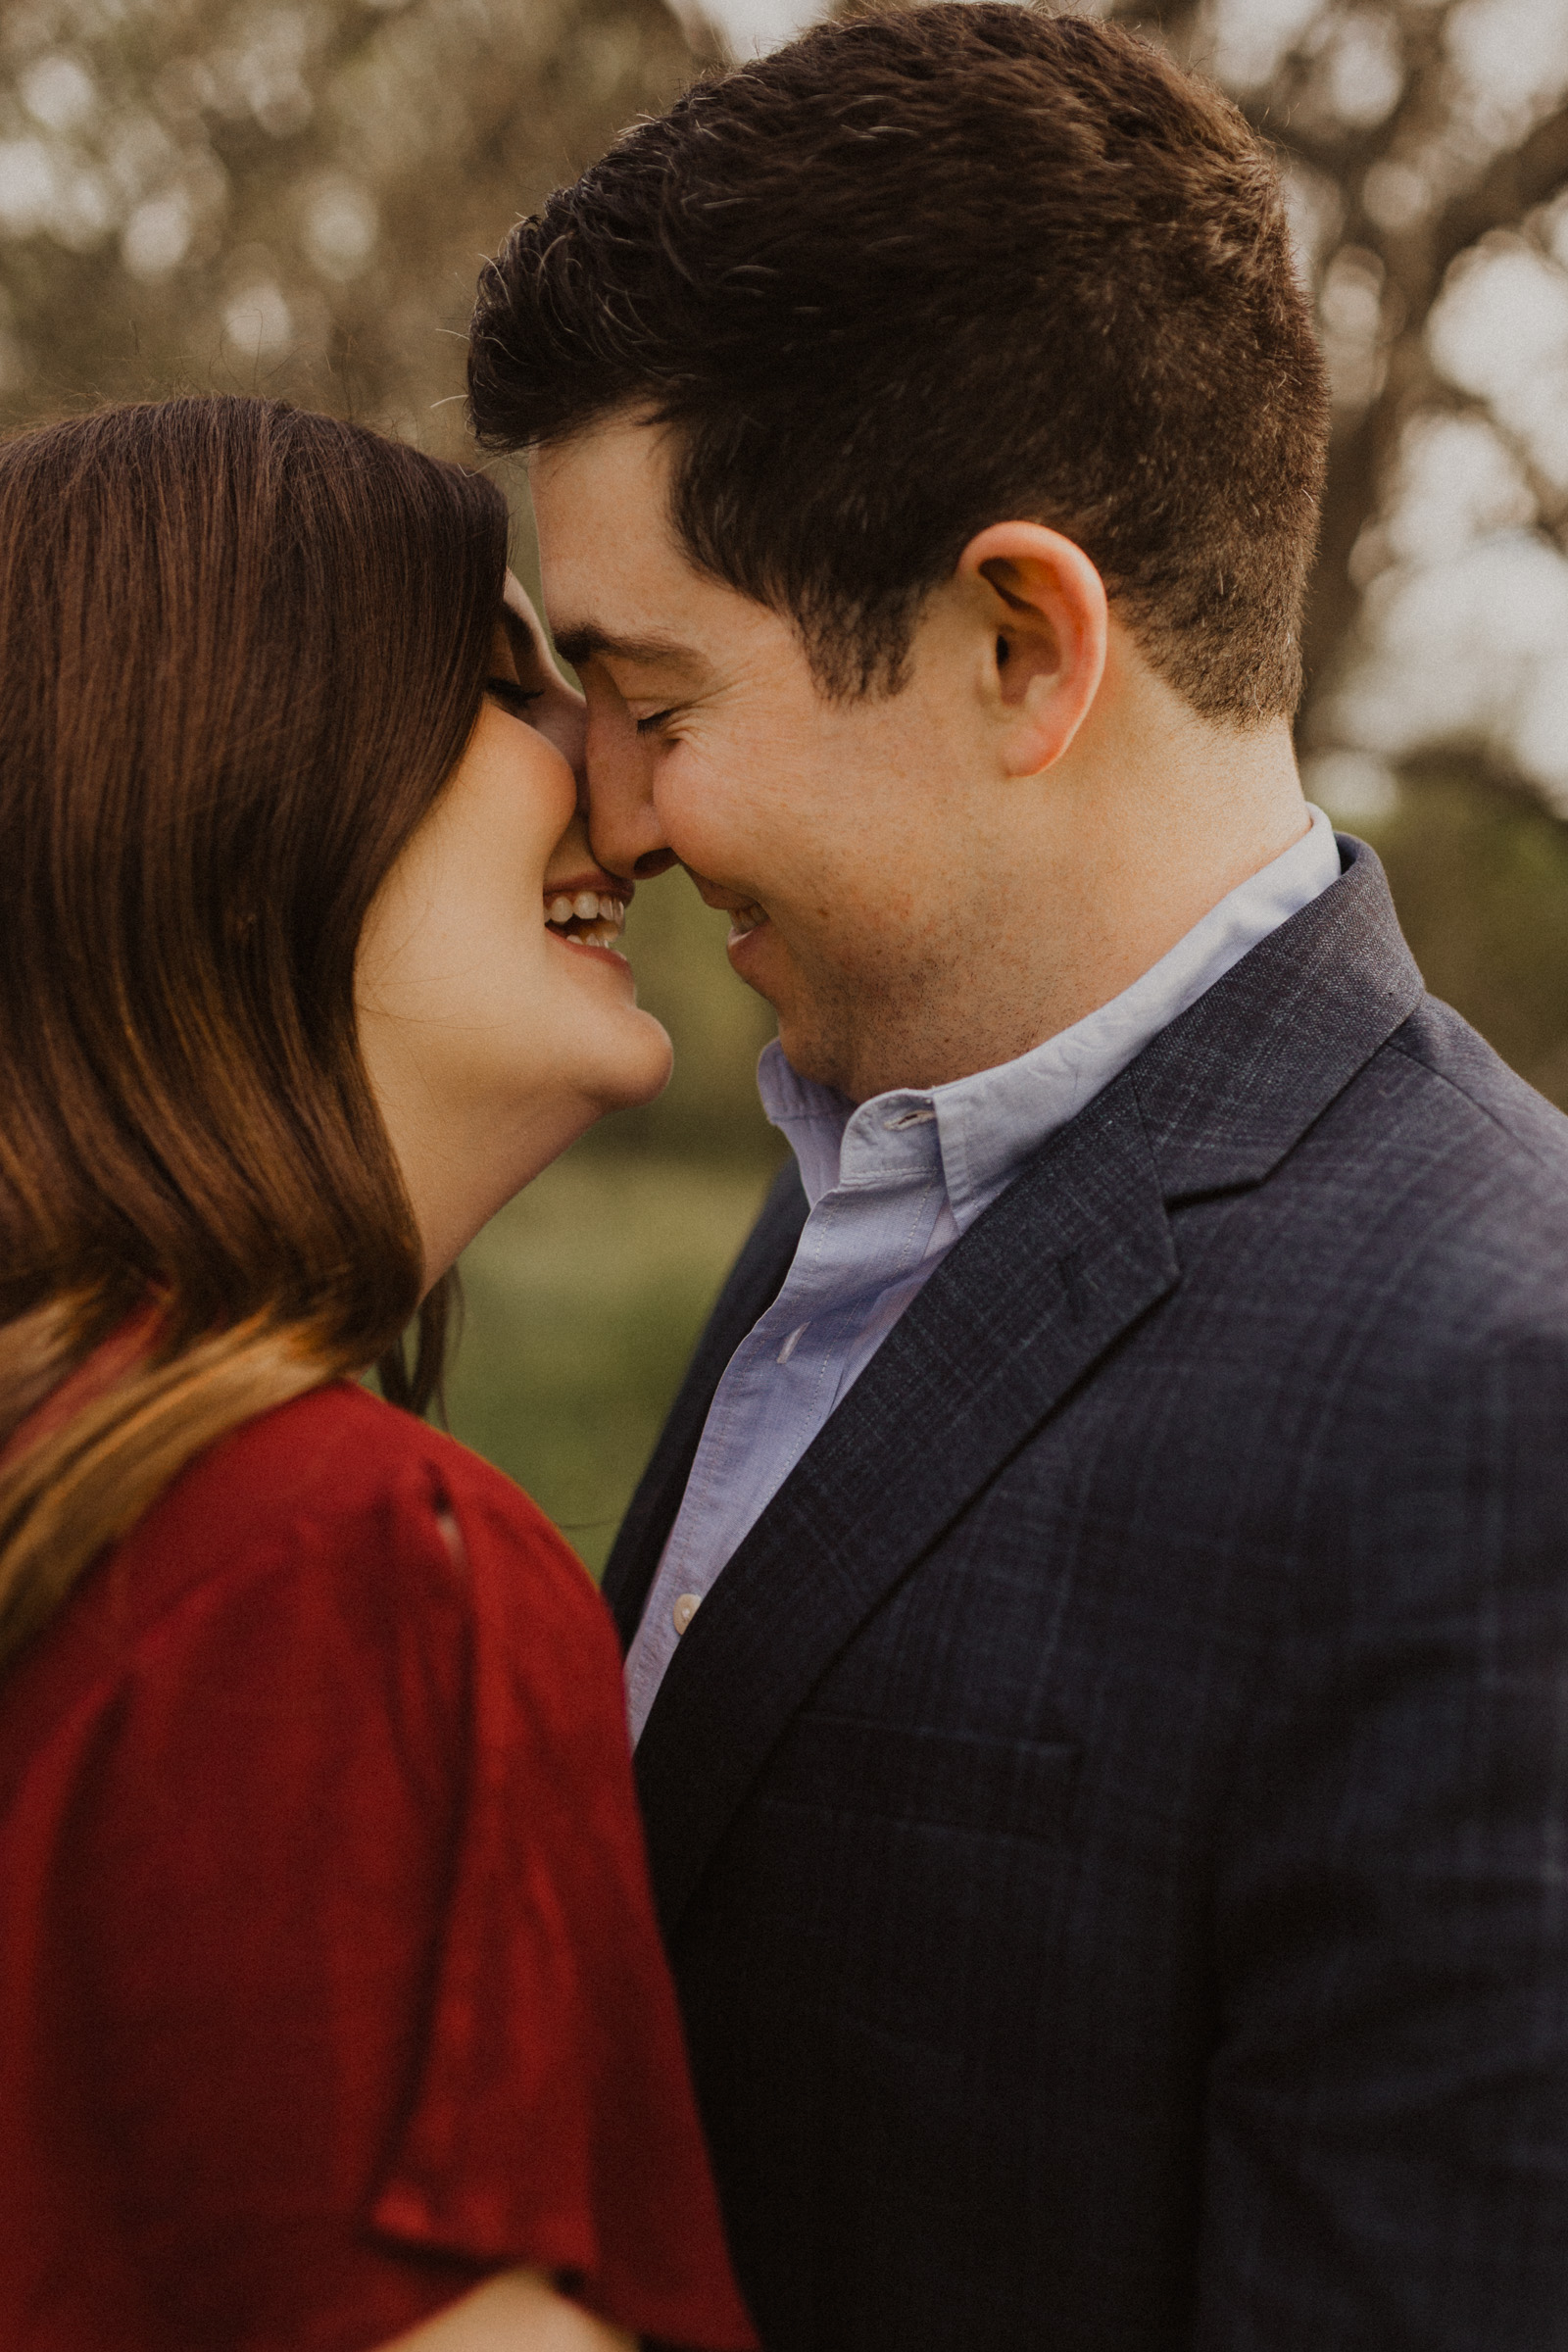 alyssa barletter photography shawnee mission park engagement session photographer spring fields-11.jpg